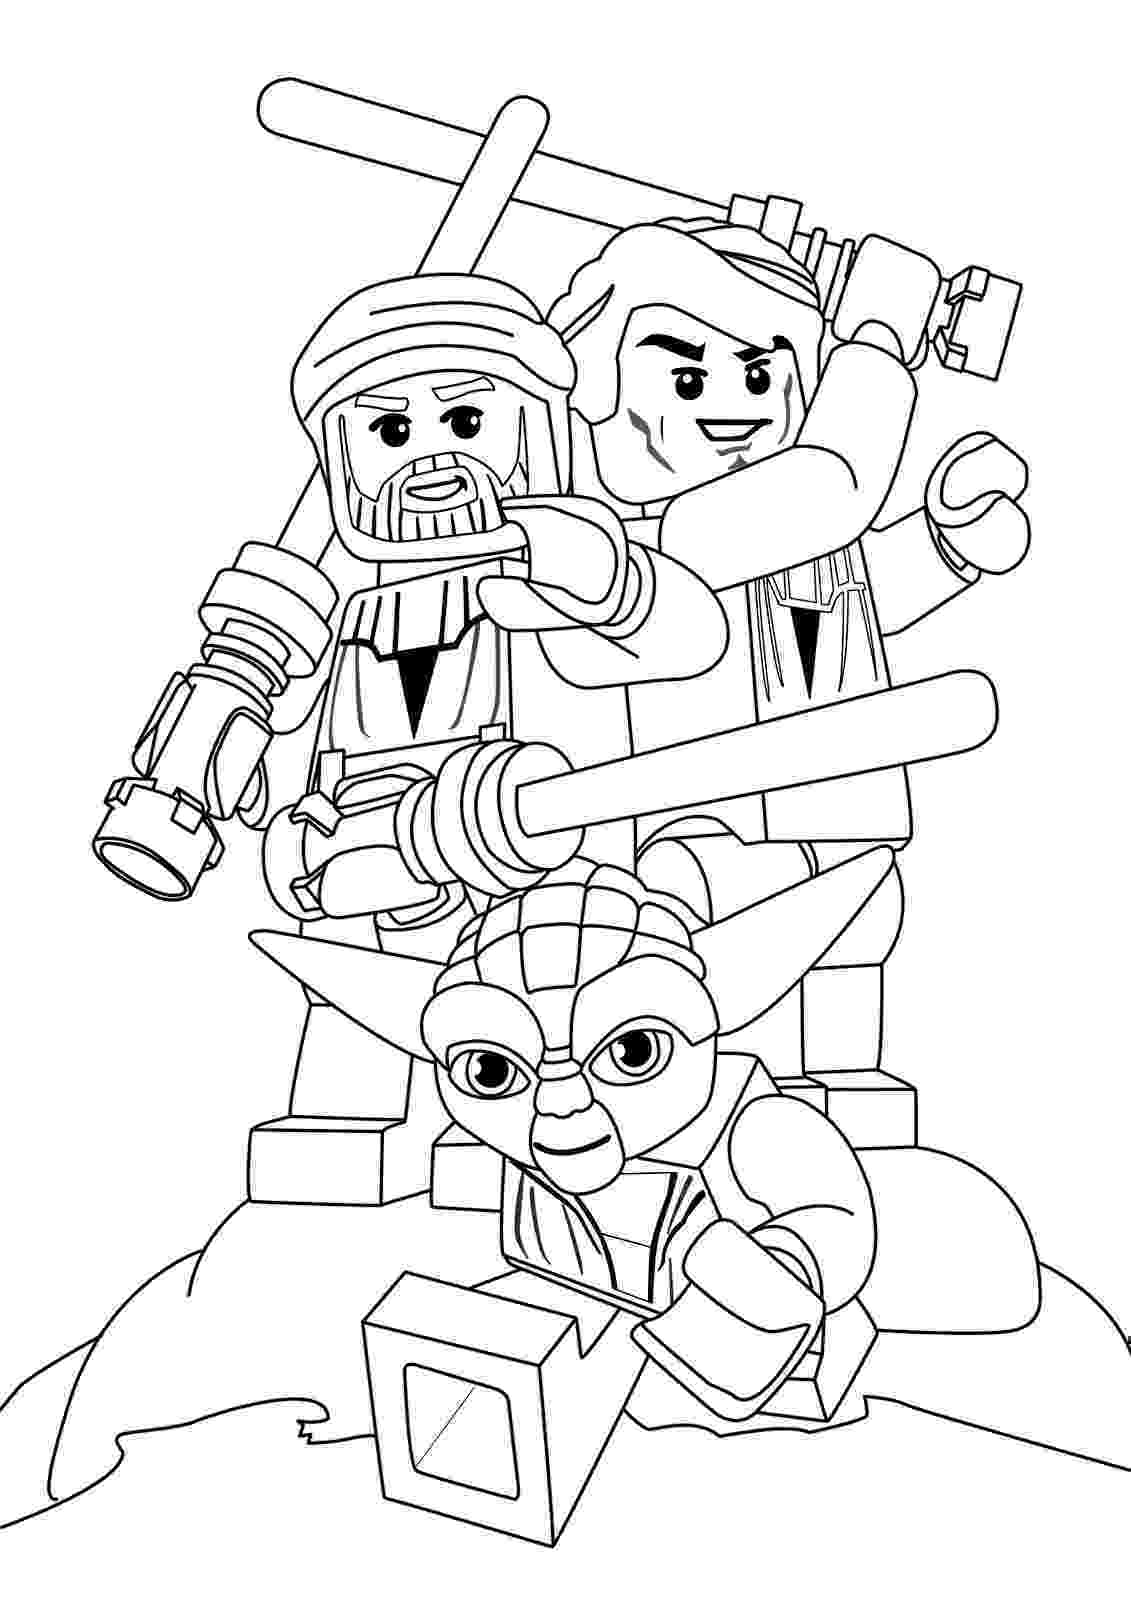 lego coloring sheets free lego star wars coloring pages to download and print for free sheets free lego coloring